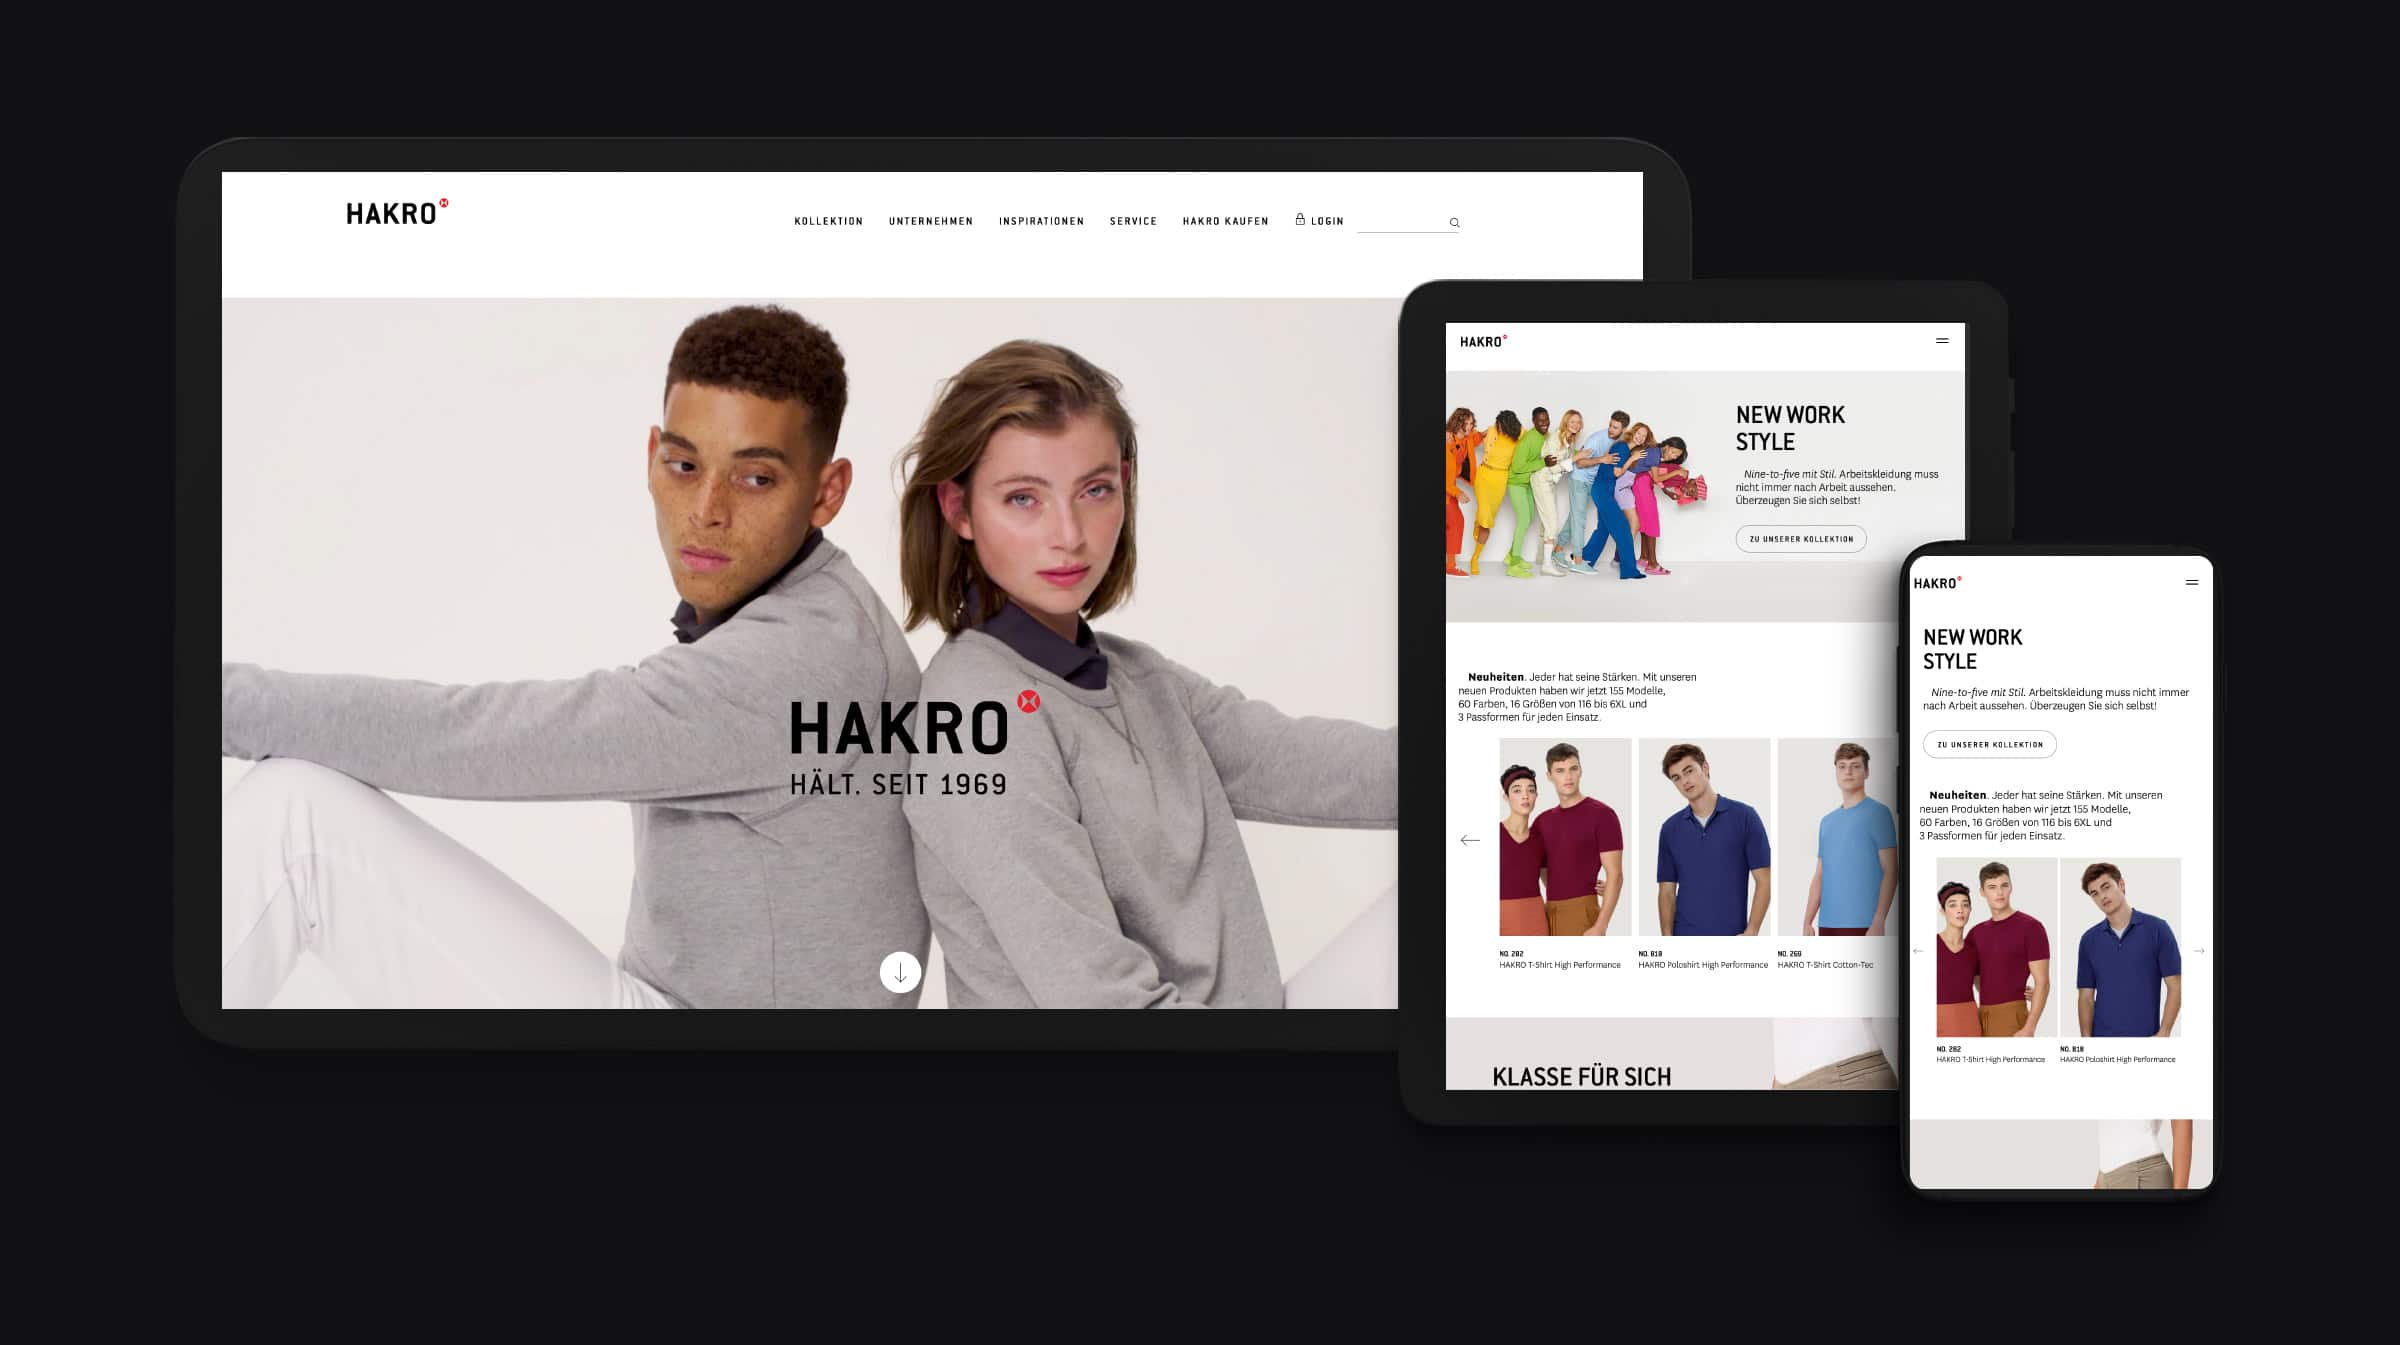 Hakro Website Mockup Inspirations-Shooting